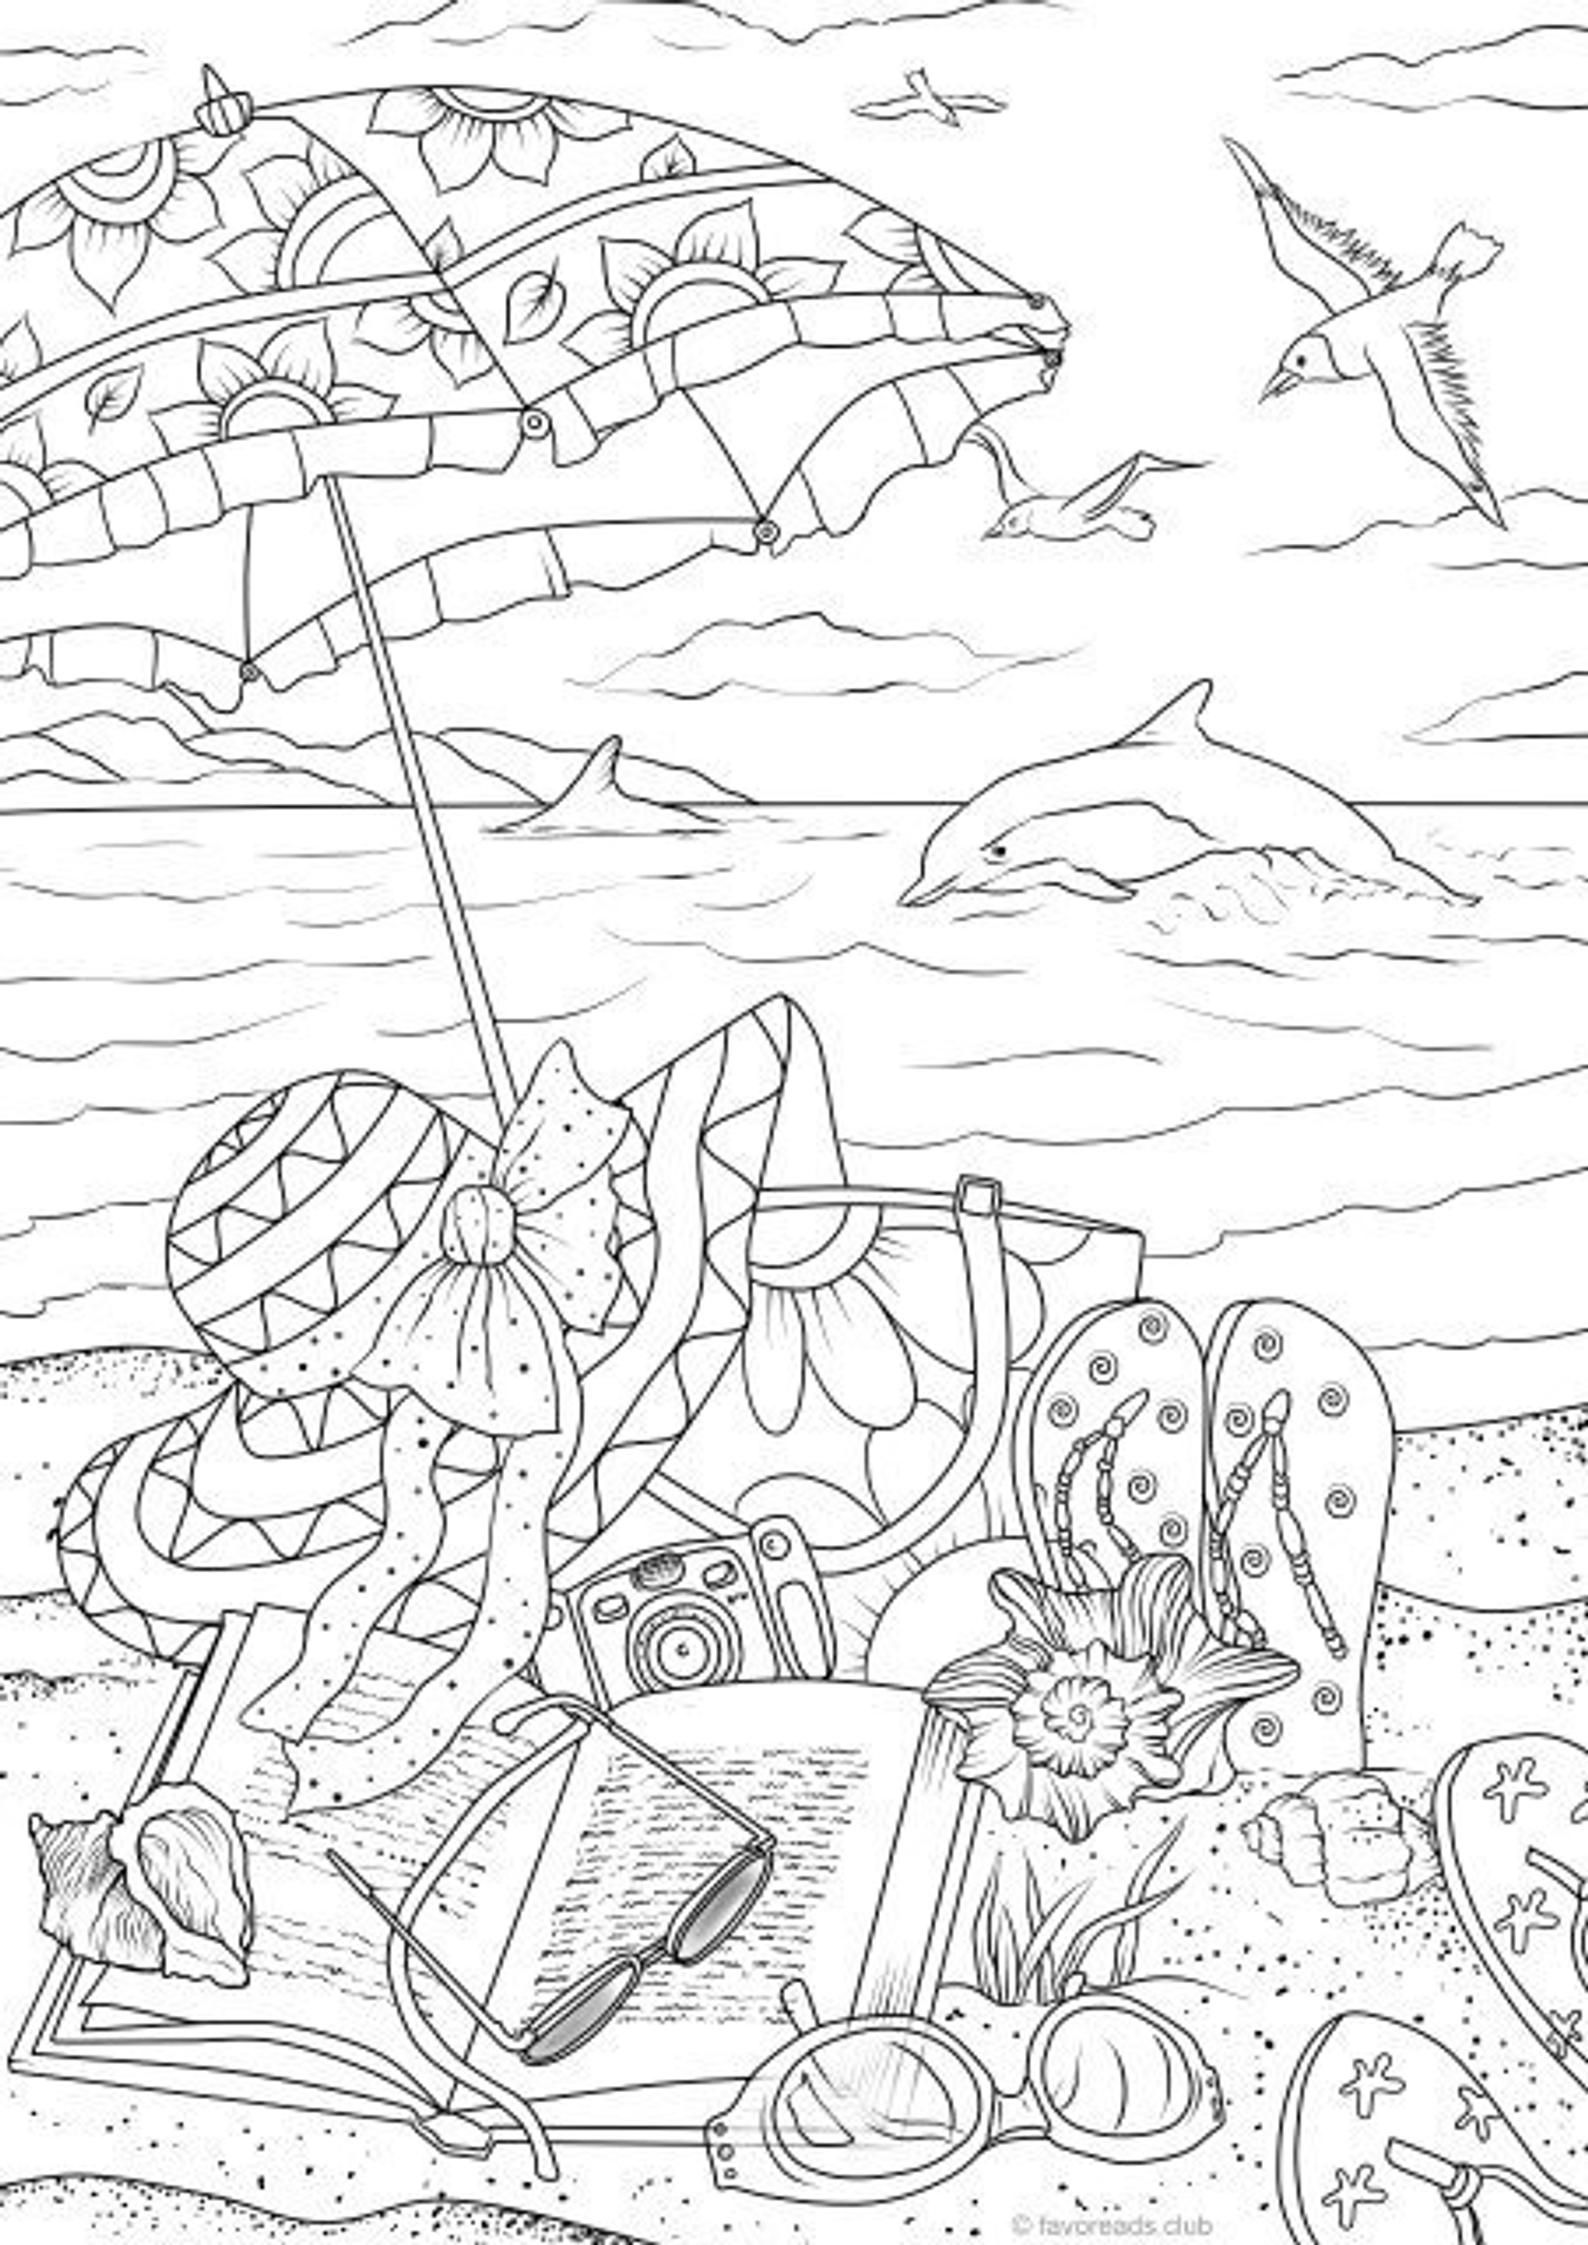 Printable Summer Coloring Pages For Adults | Best Coloring ...